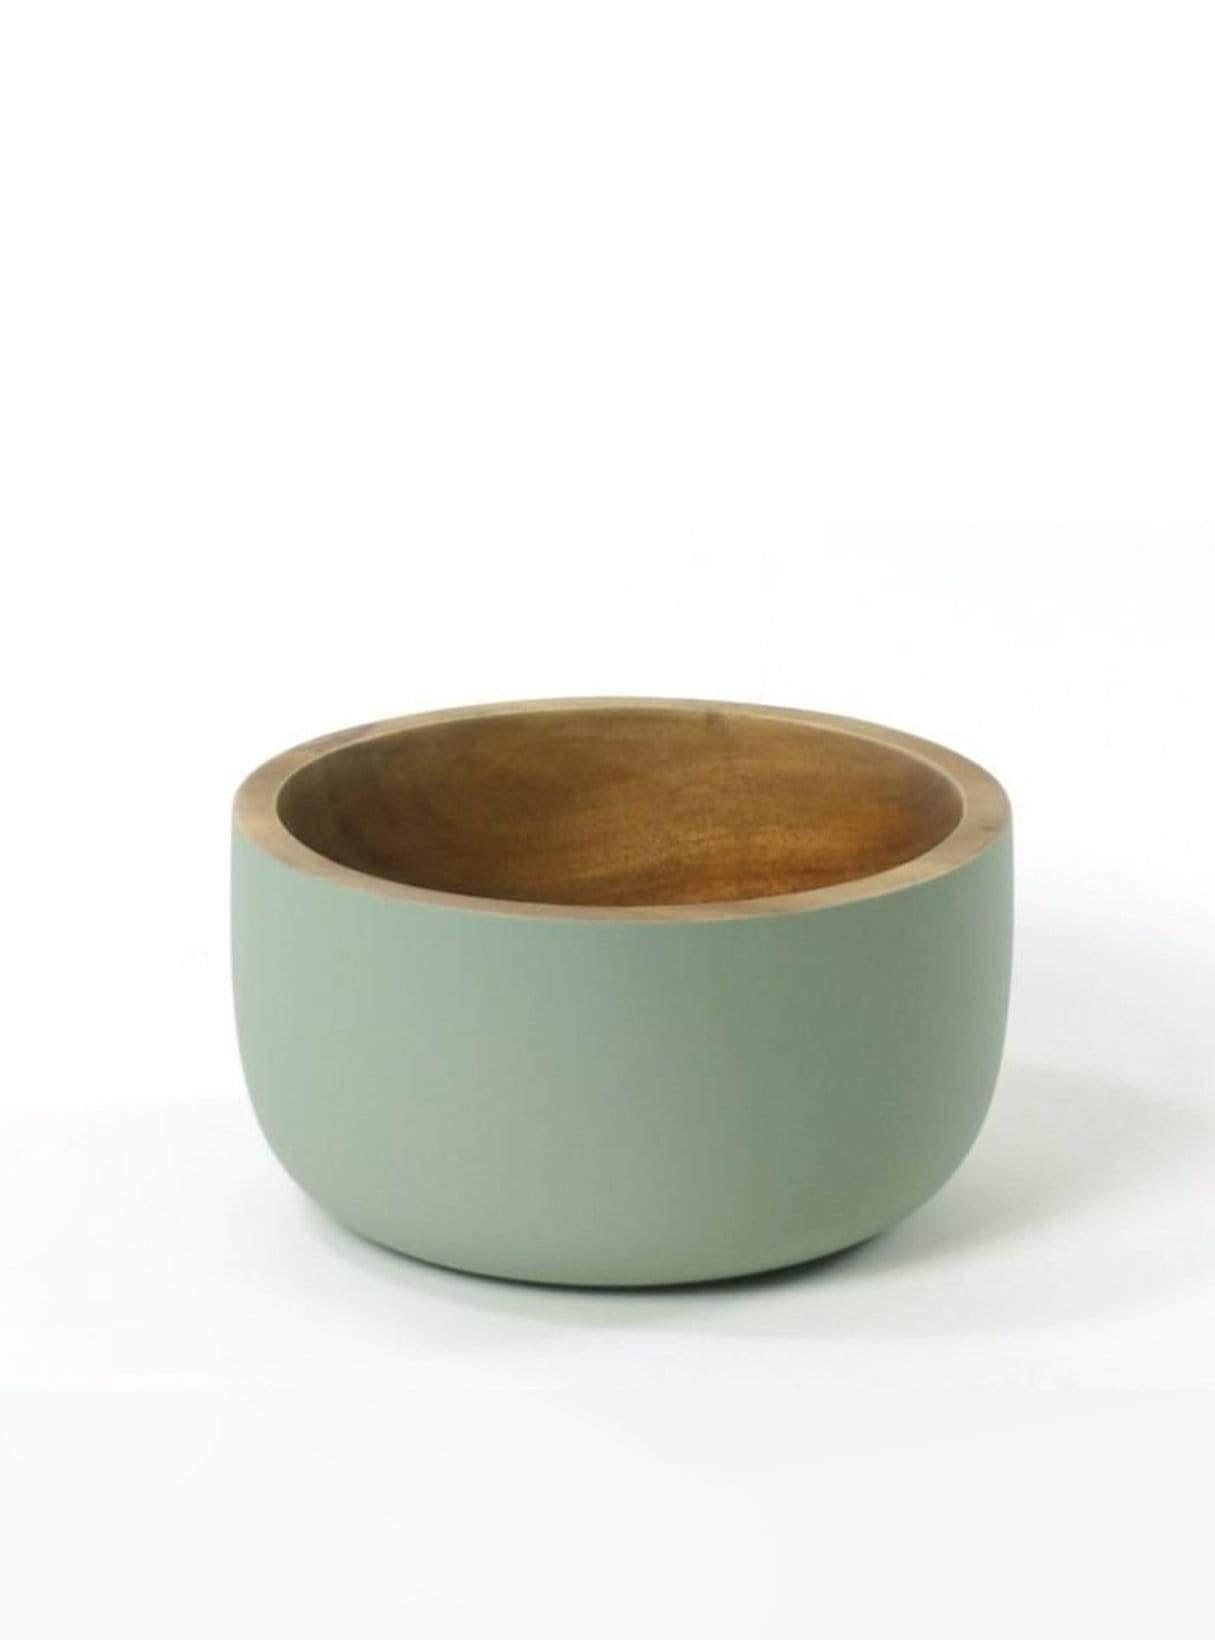 Acacia wood bowl - rustic mint - 16.5cm